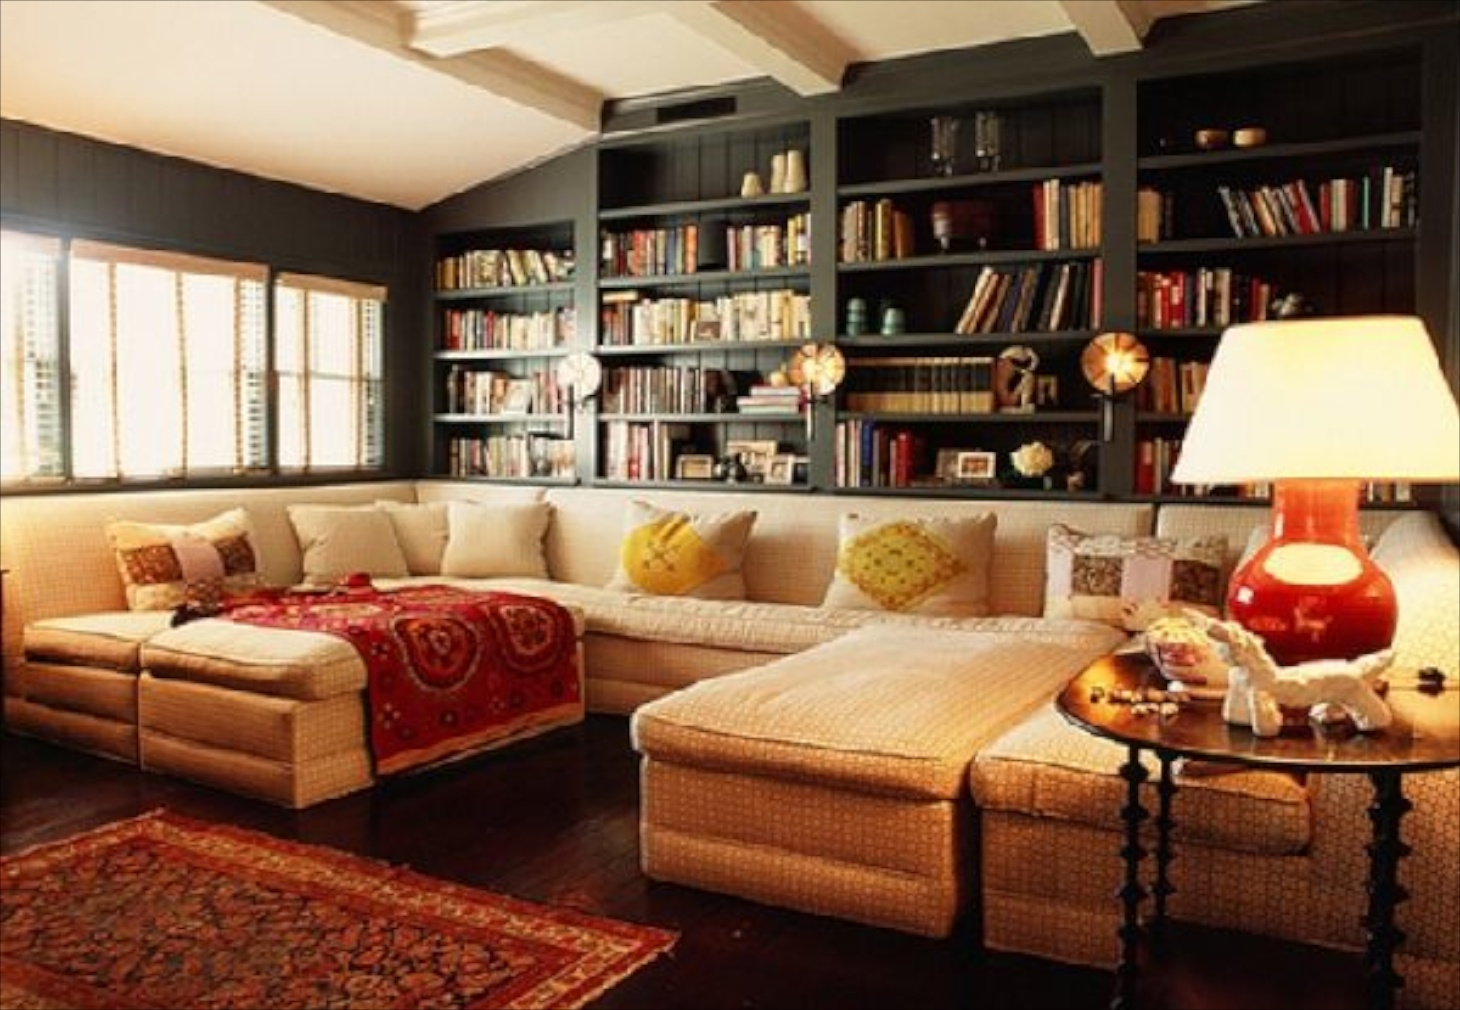 23 sofas and bookcase ideas in cozy living room design for Lounge sitting room